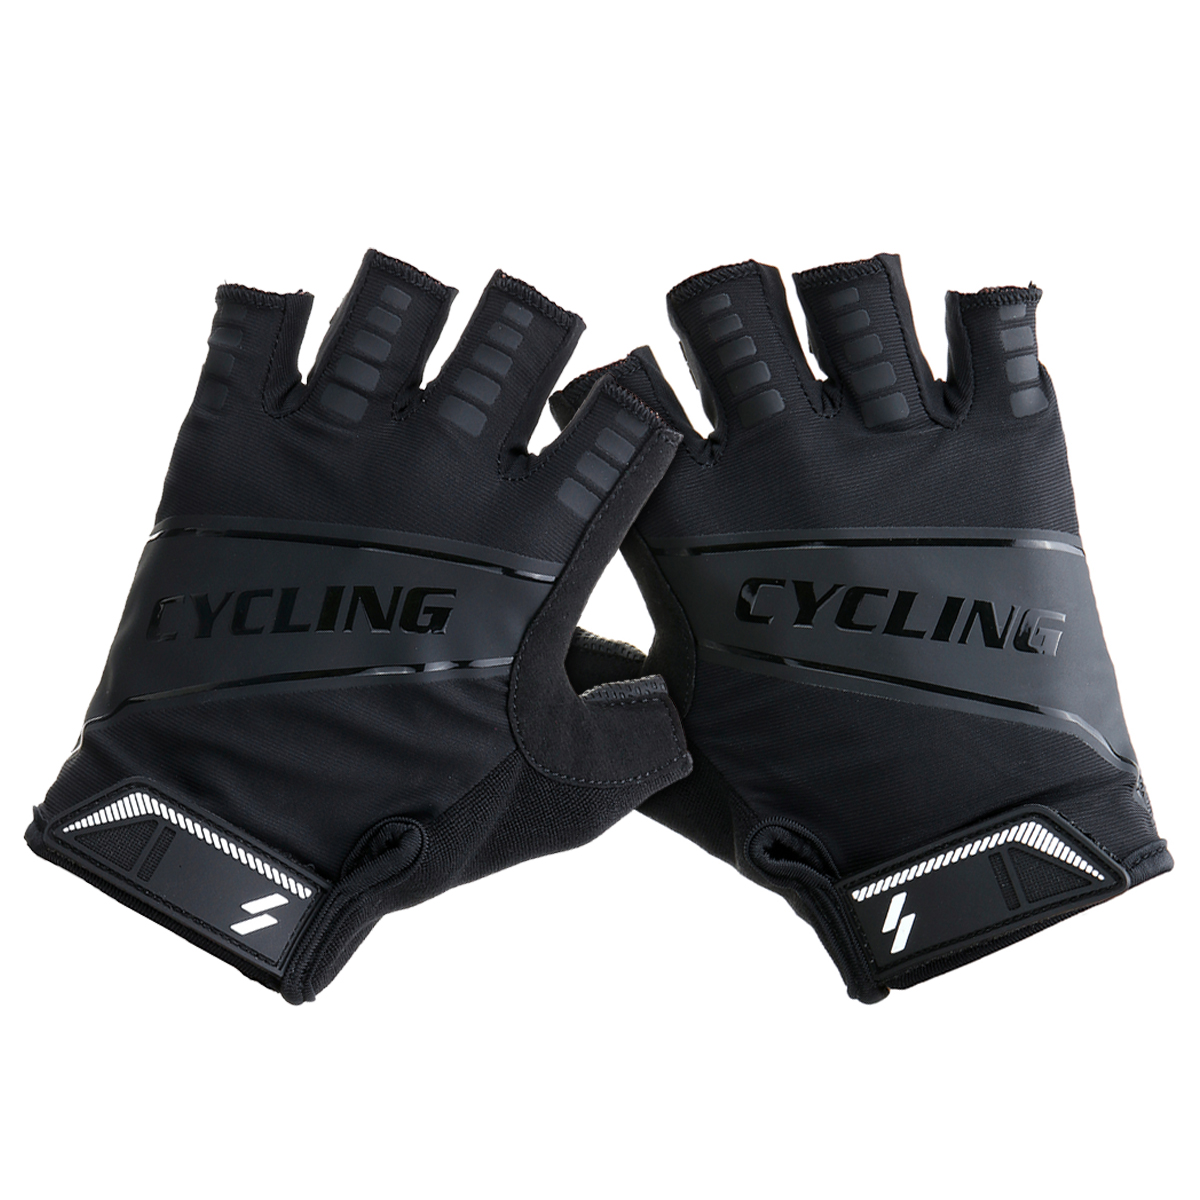 Pair Bike MTB Outdoor Fitness Sport Half Finger Gloves Breathable Cycling Gear Unisex